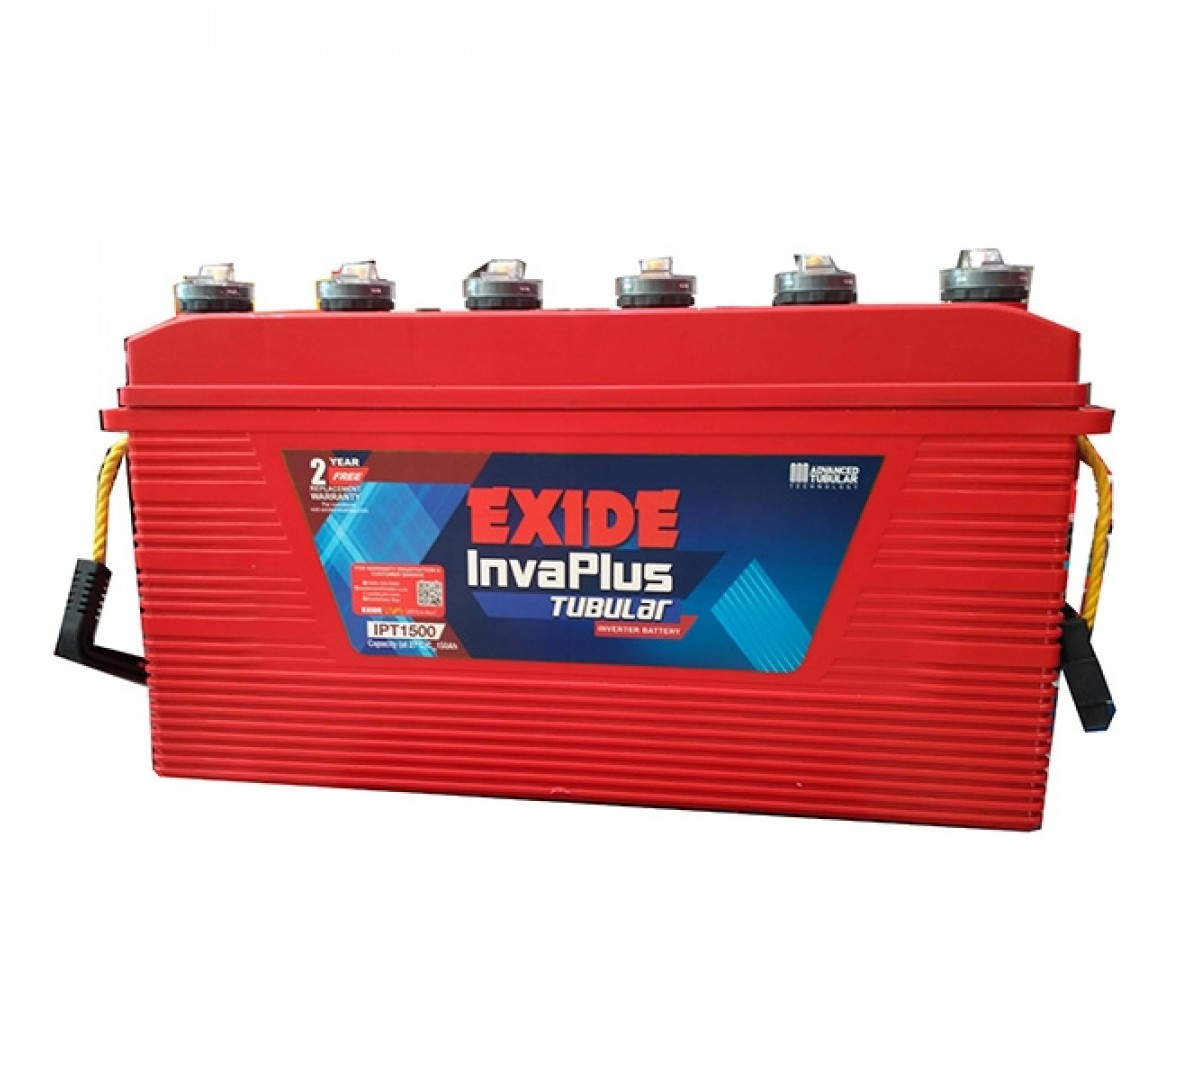 Exide Invaplus IPST1500 150Ah Tubular Battery